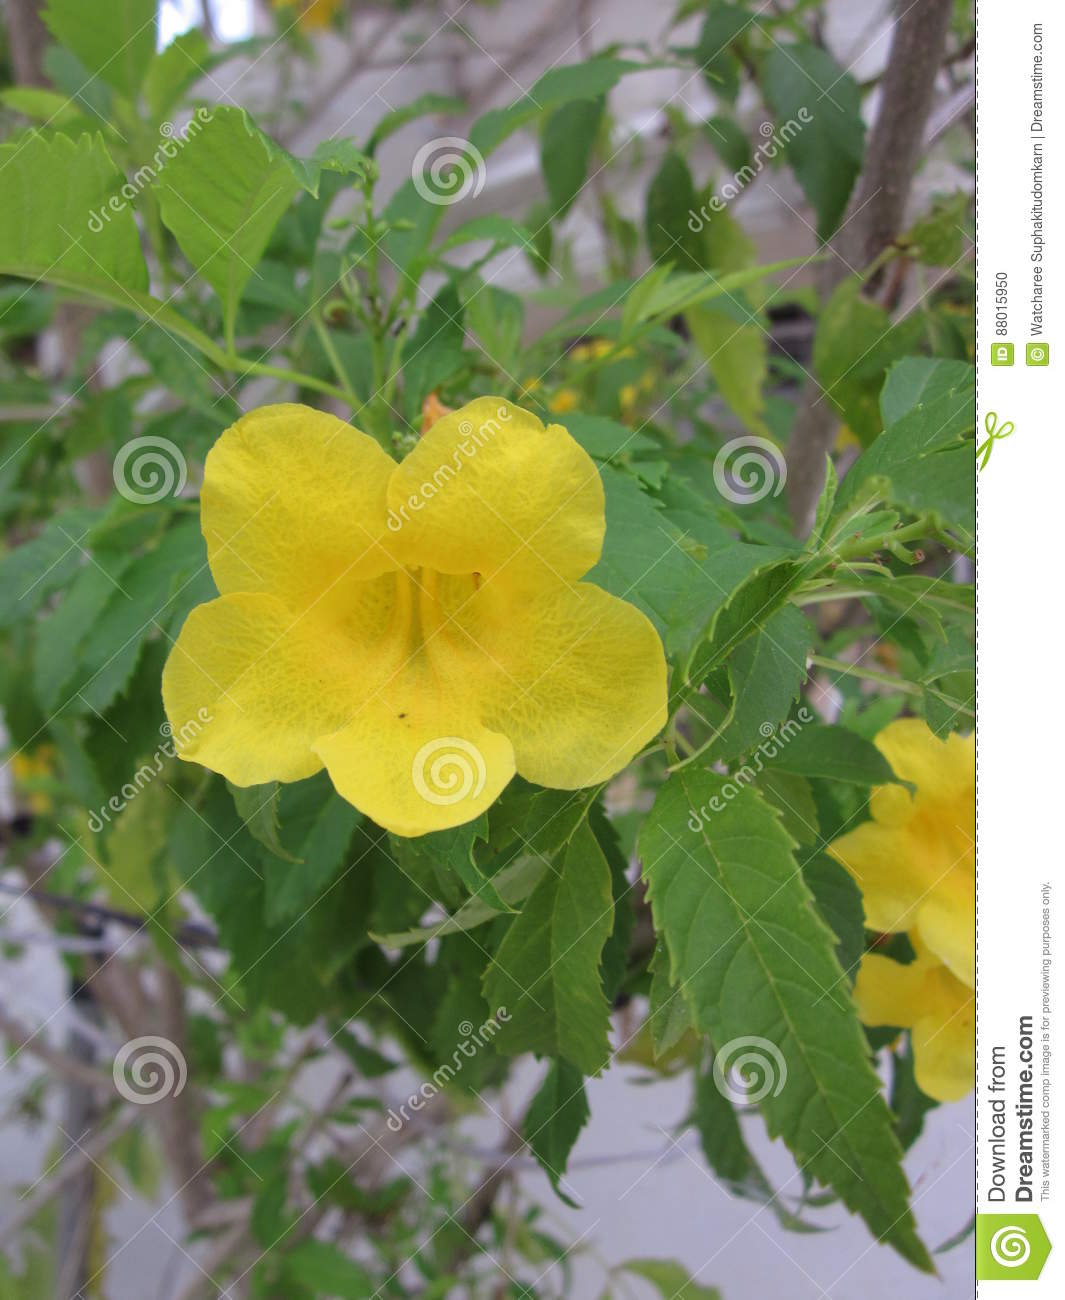 Tecoma stans or yellow trumpetbush or yellow bells flower stock download comp mightylinksfo